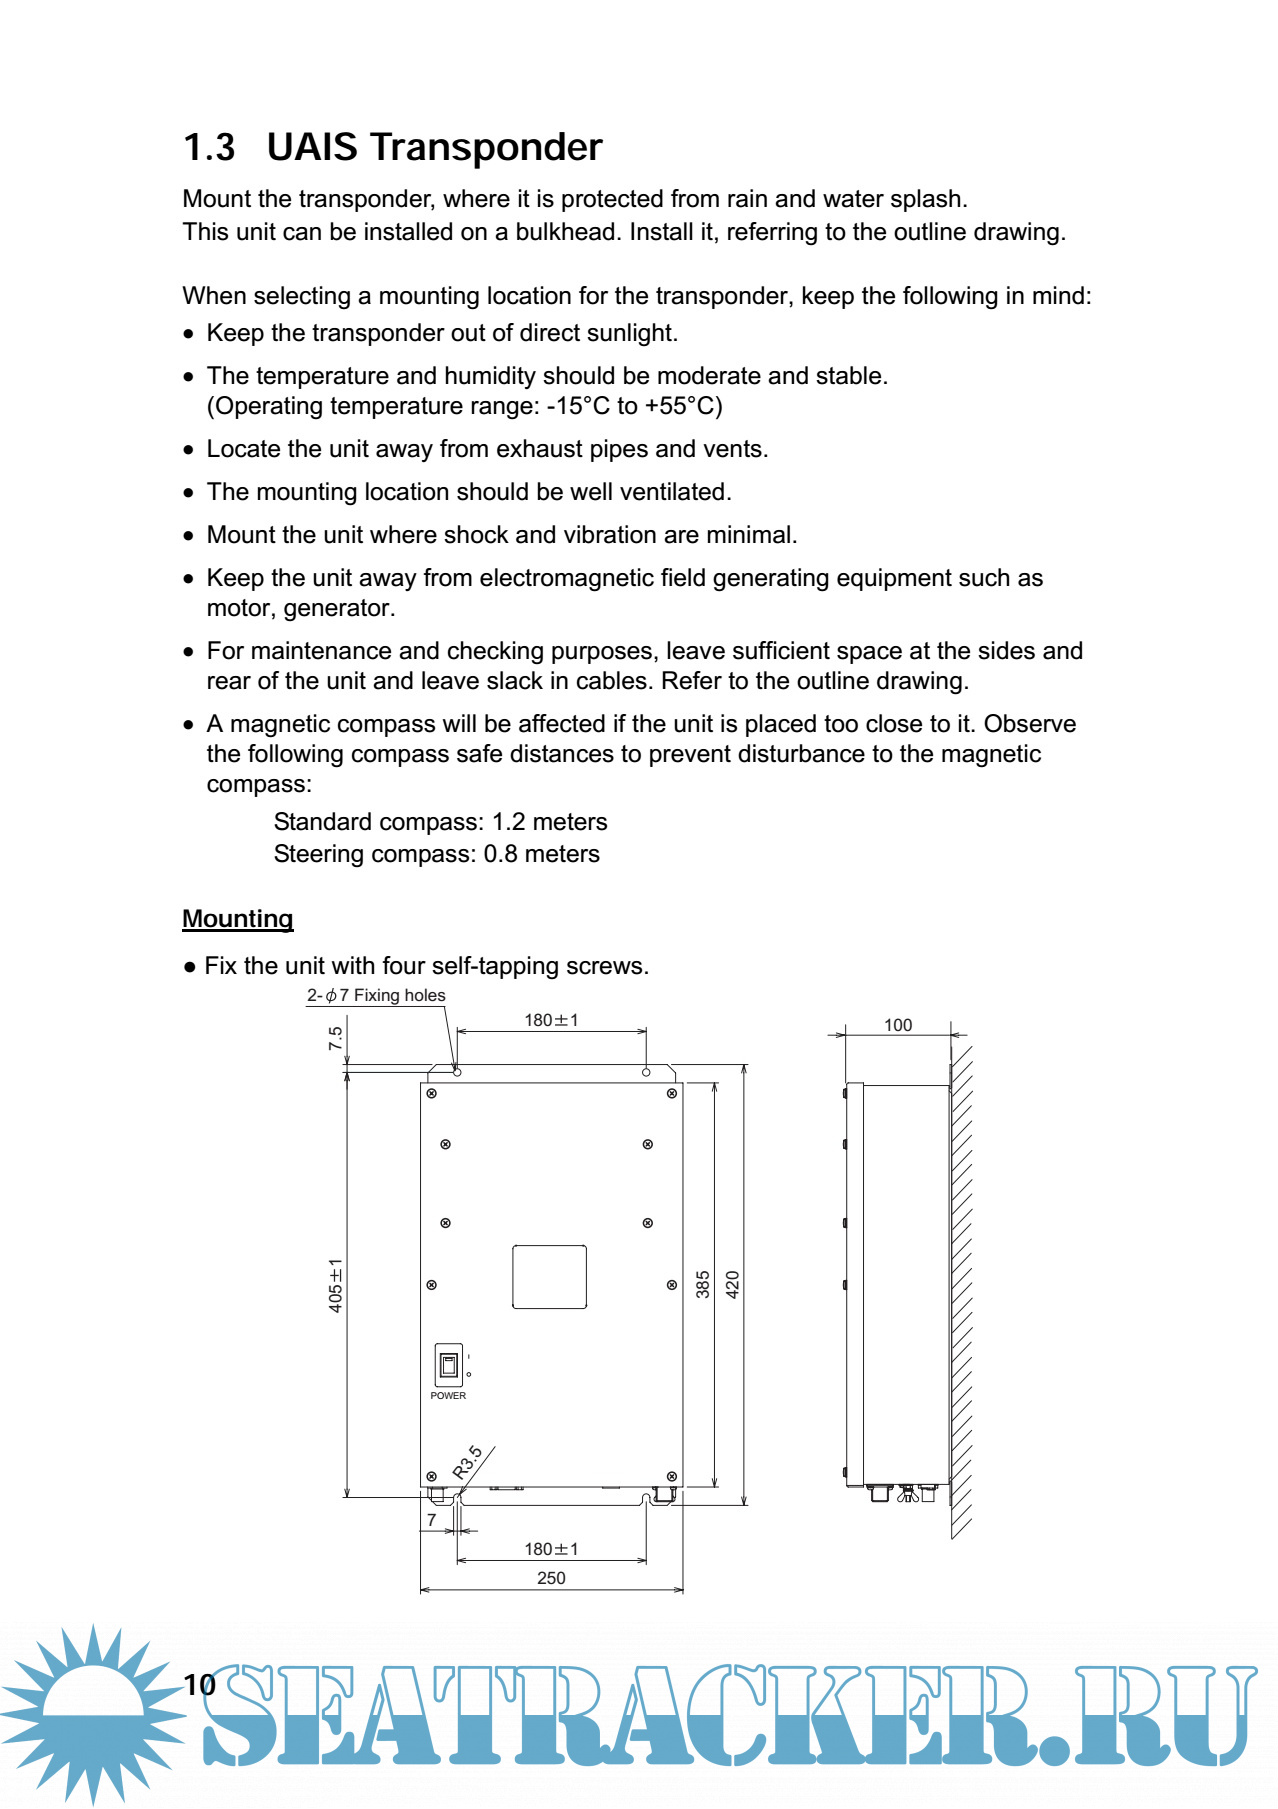 Voyager Trike Kit Wiring Diagram Trusted Diagrams Vw Fa 100 Install Manual User Guide That Easy To Read U2022 Trailer